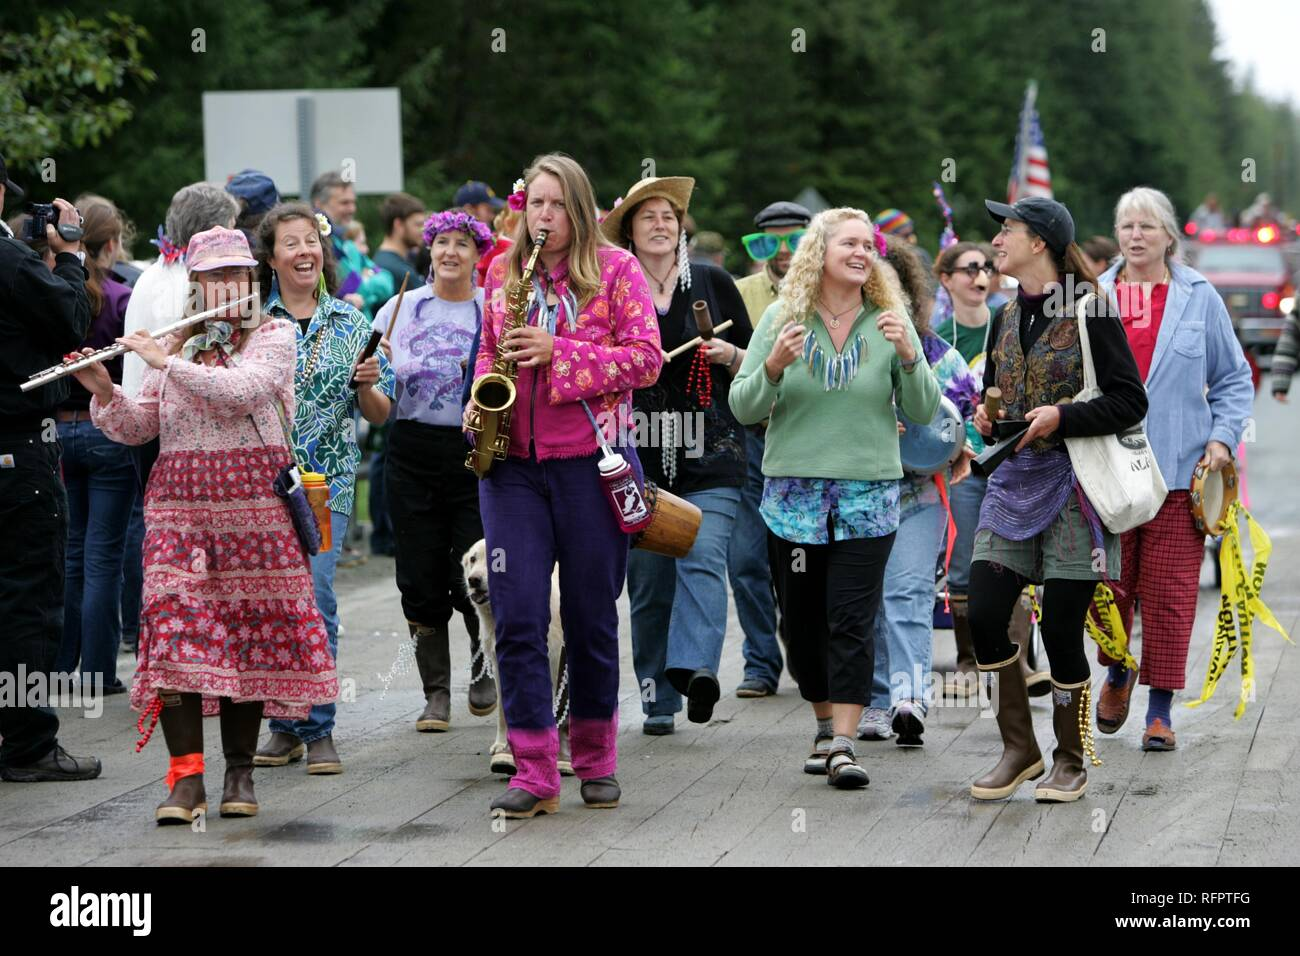 USA, United States of America, Alaska, Gustavus: 4th July, Independence day party in Gustavus, a village with 400 residents. Stock Photo